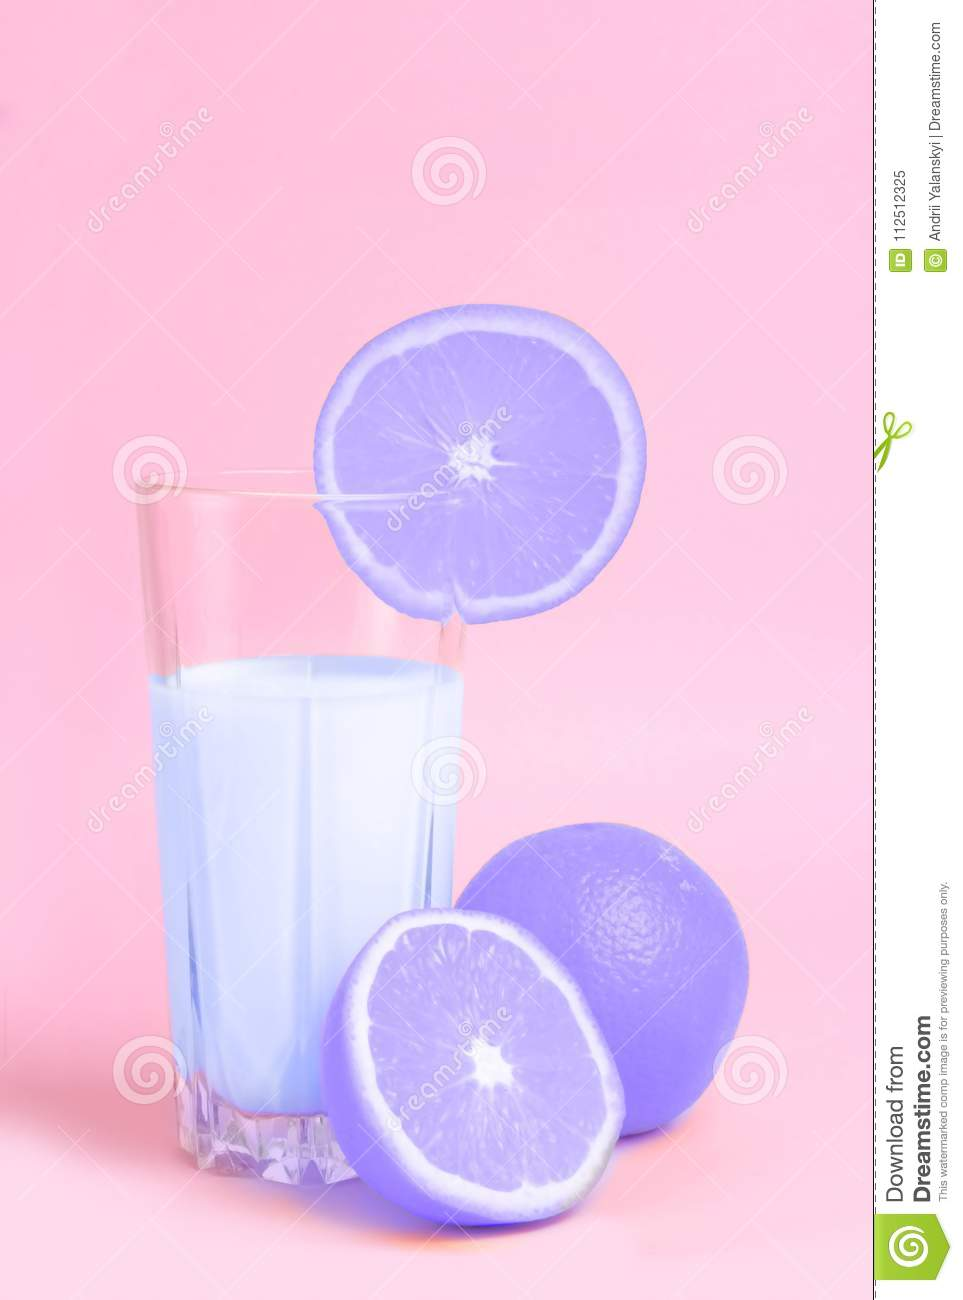 A glass with orange juice with the cut oranges on a pink background. Juicy color scale, pin up, pop up styles. Food for breakfast